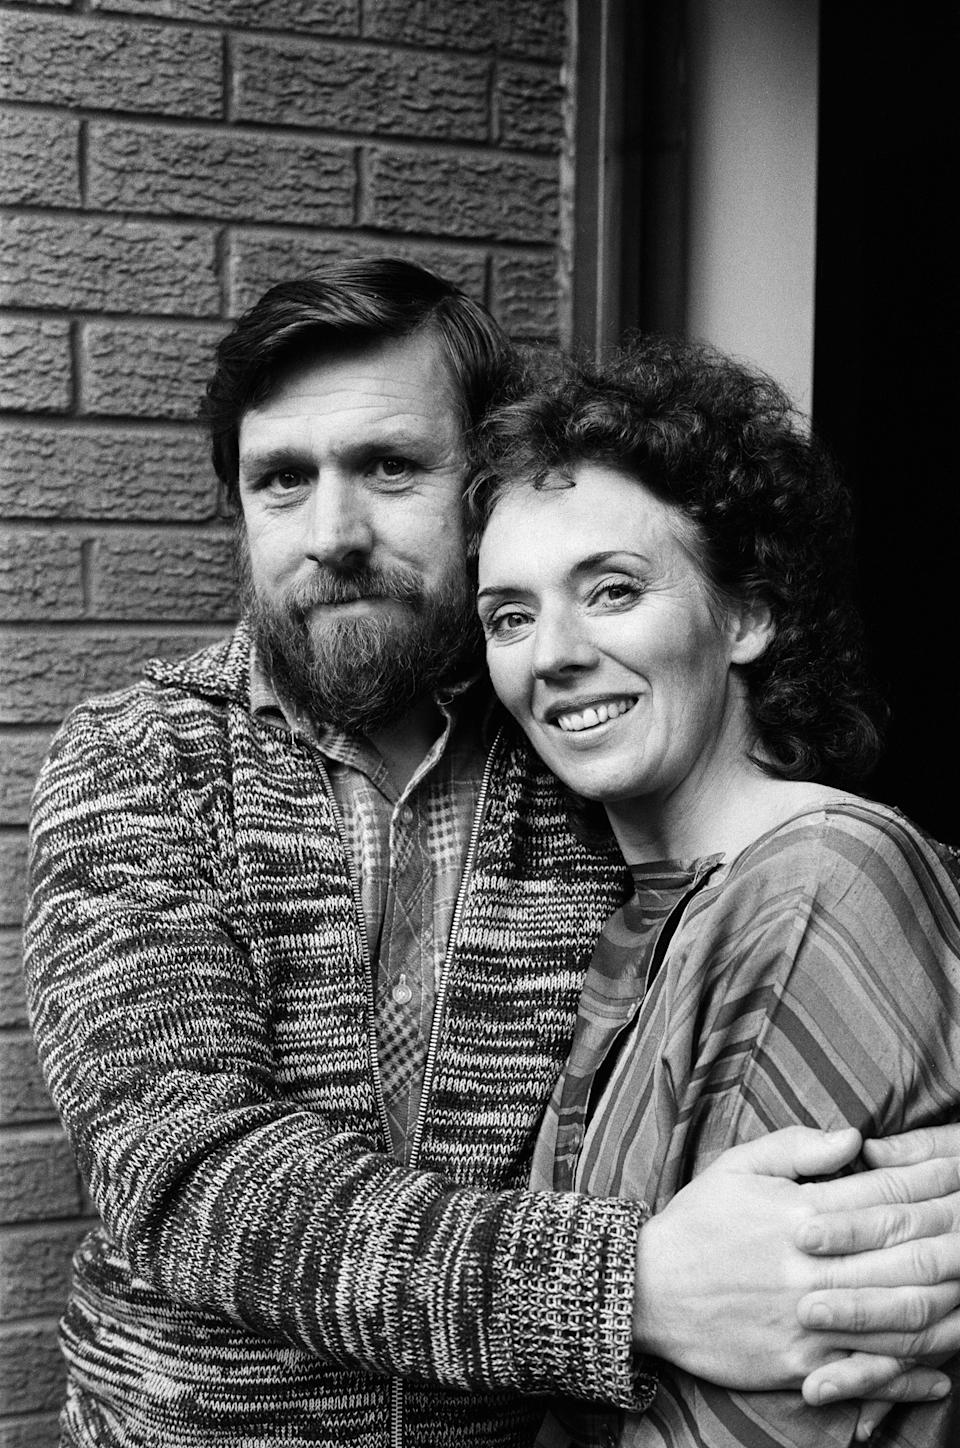 The cast of Brookside, Ricky Tomlinson who played Robert Grant and Sue Johnston who played Sheila Grant. 6th October 1982. (Photo by Staff/Mirrorpix/Getty Images)